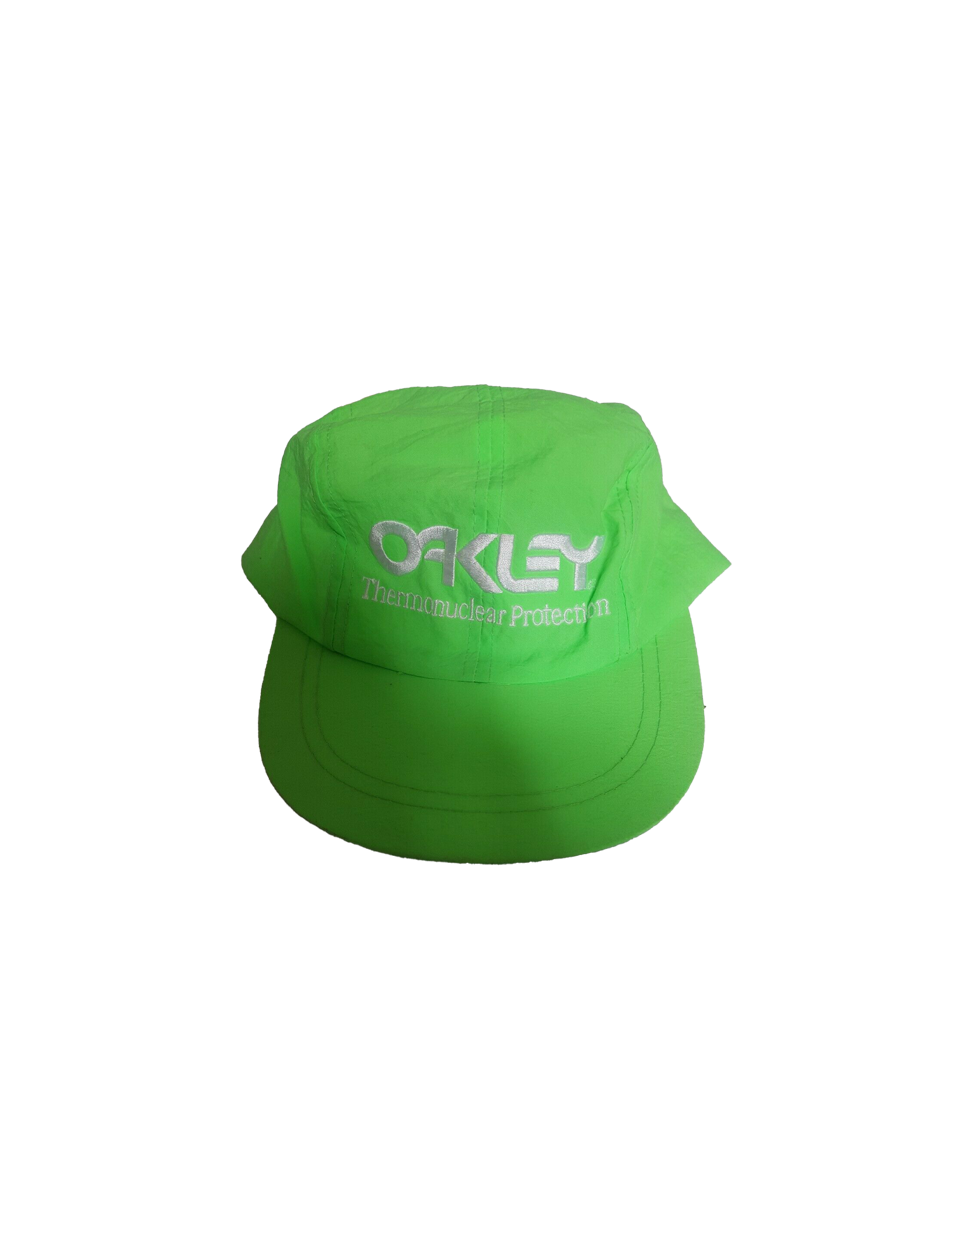 oakley-thermonuclear-protection-cap